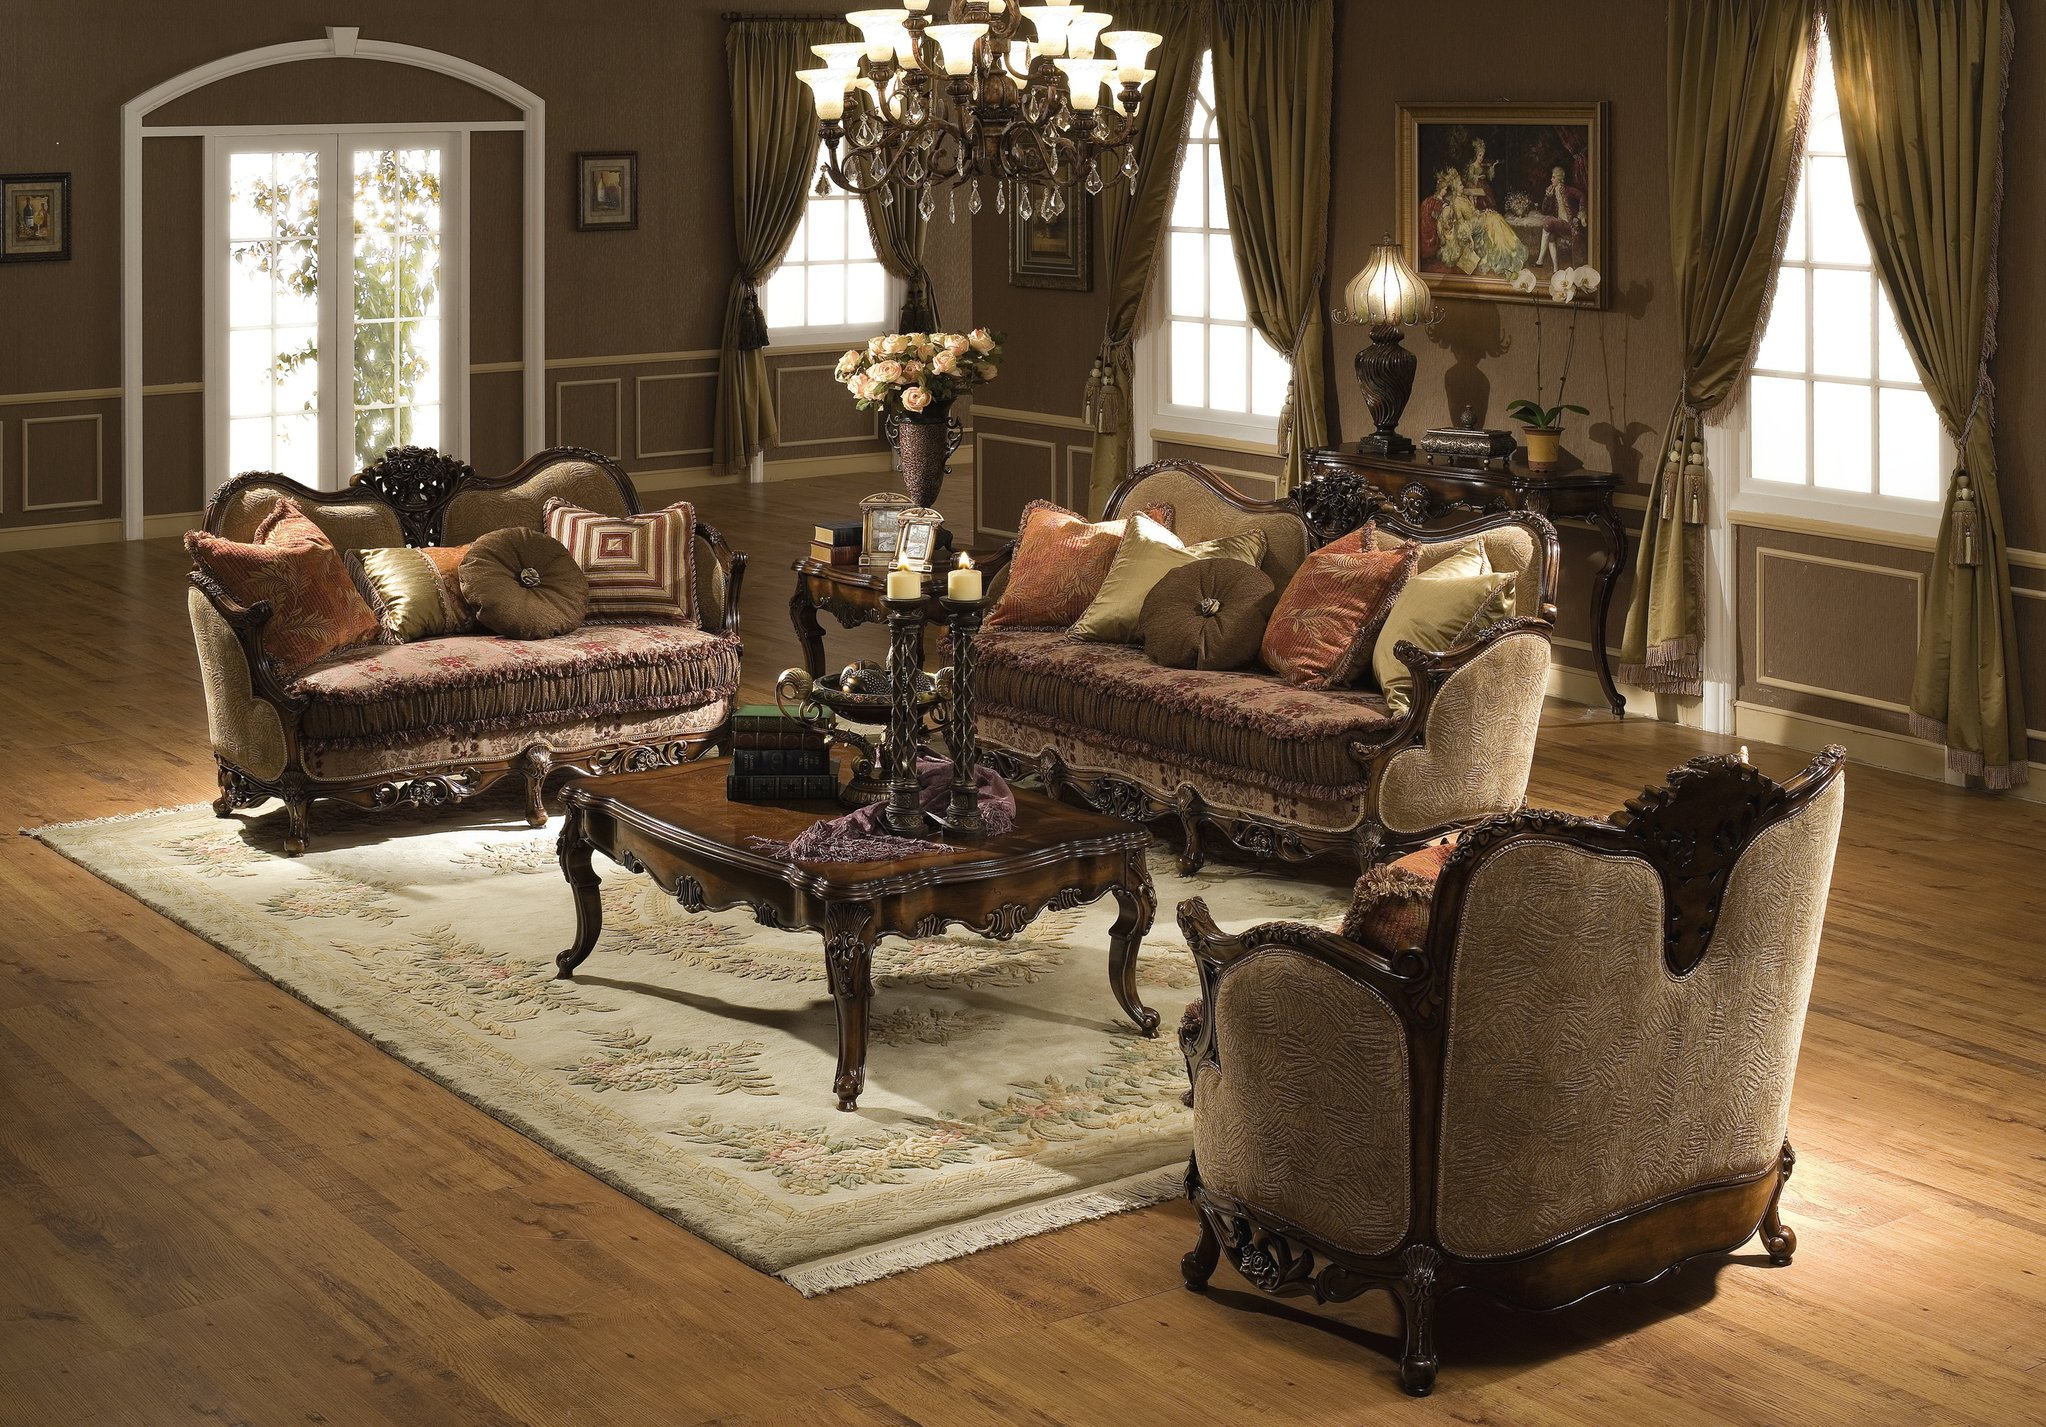 Awesome front room furnishings for living room ideas with front room furnishings outlet